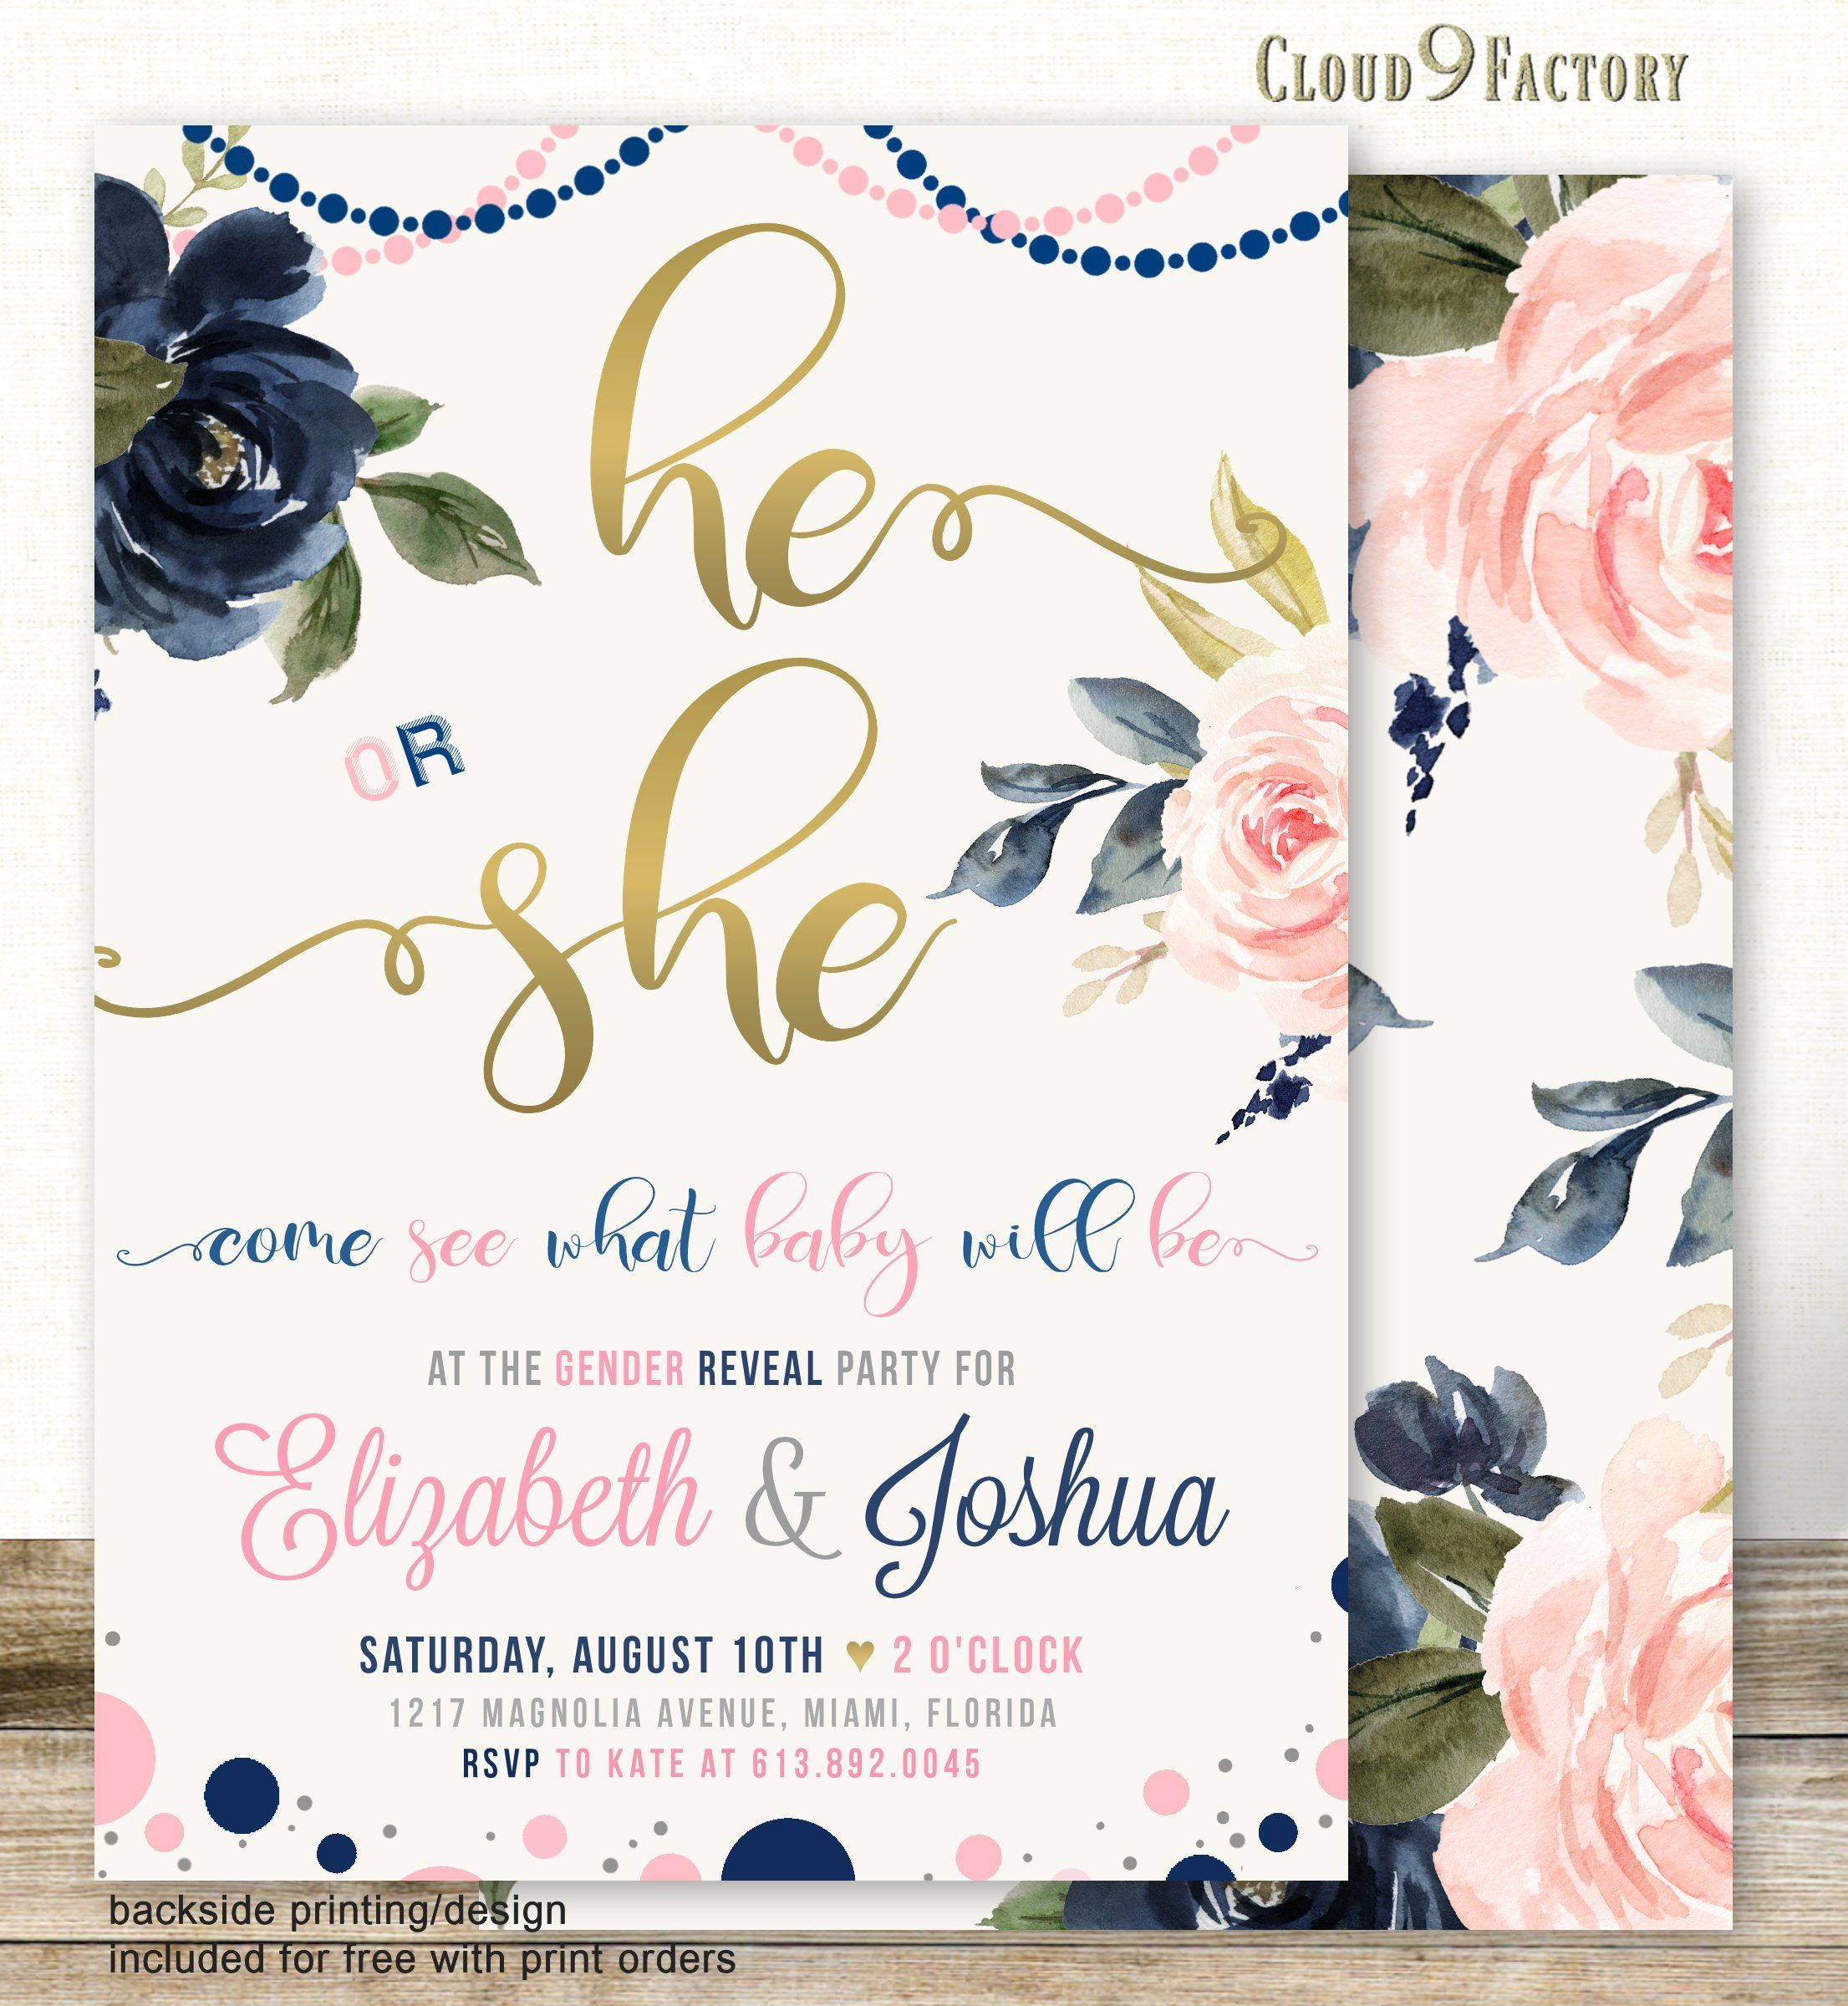 Reveal Party Invitation Gender Reveal Invite Boy Or Girl Gold Pink Or Blue Blush Pink and Navy Floral Hot Air Balloon He Or She